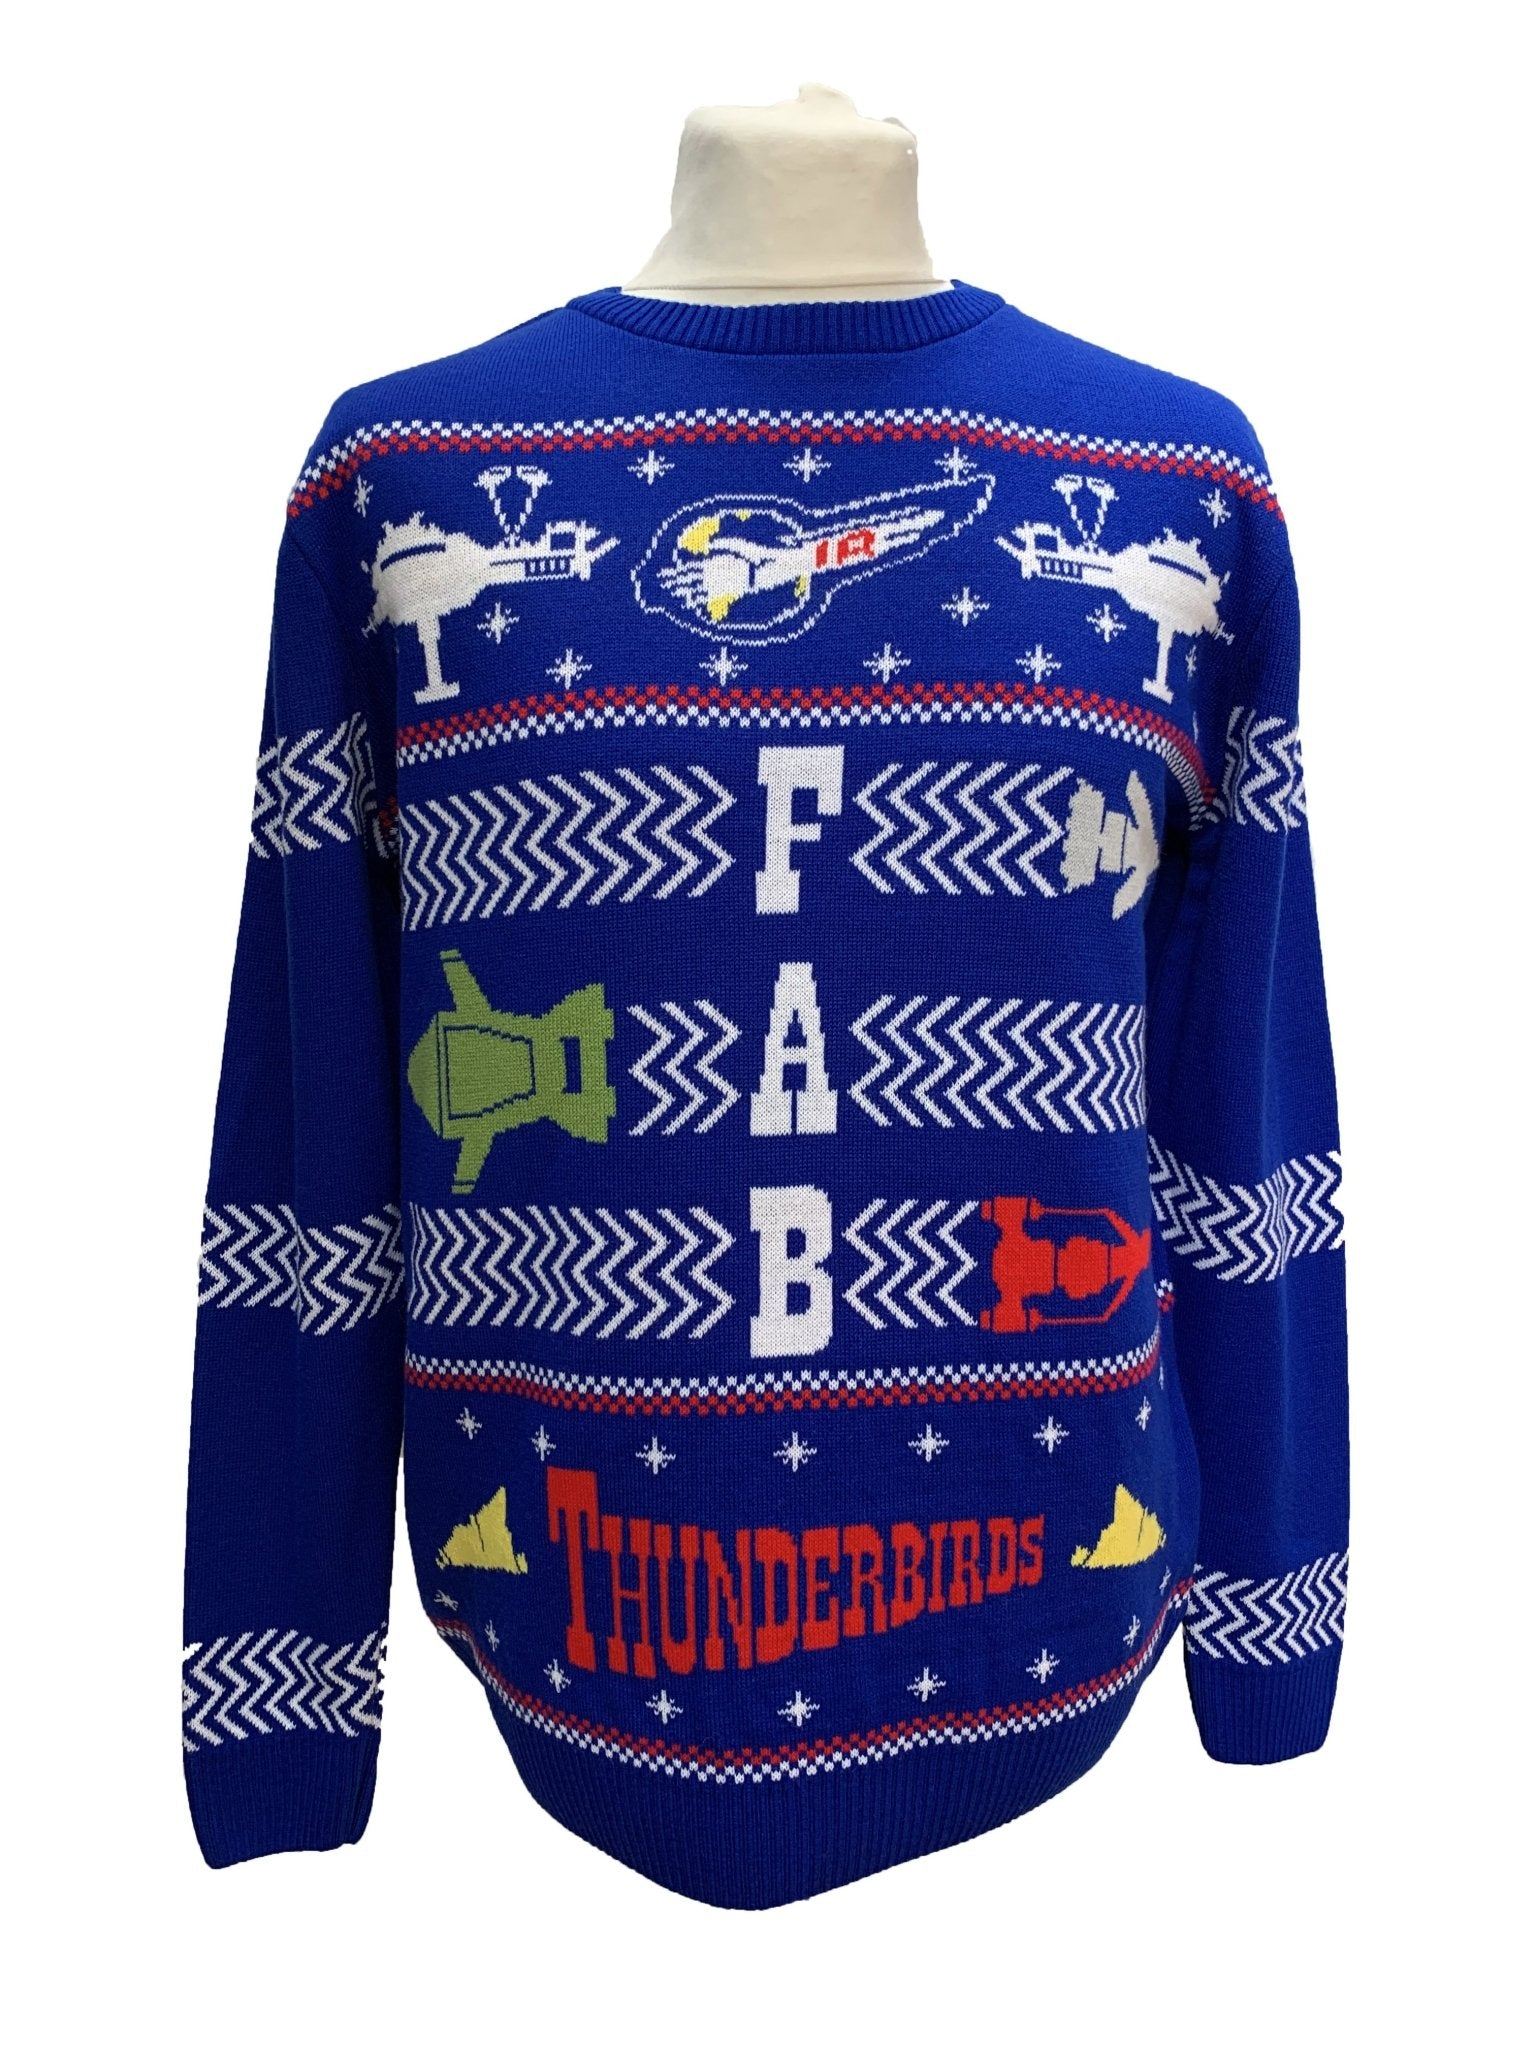 2020 Thunderbirds Christmas Jumper/Sweater [Official & Exclusive] - The Gerry Anderson Store